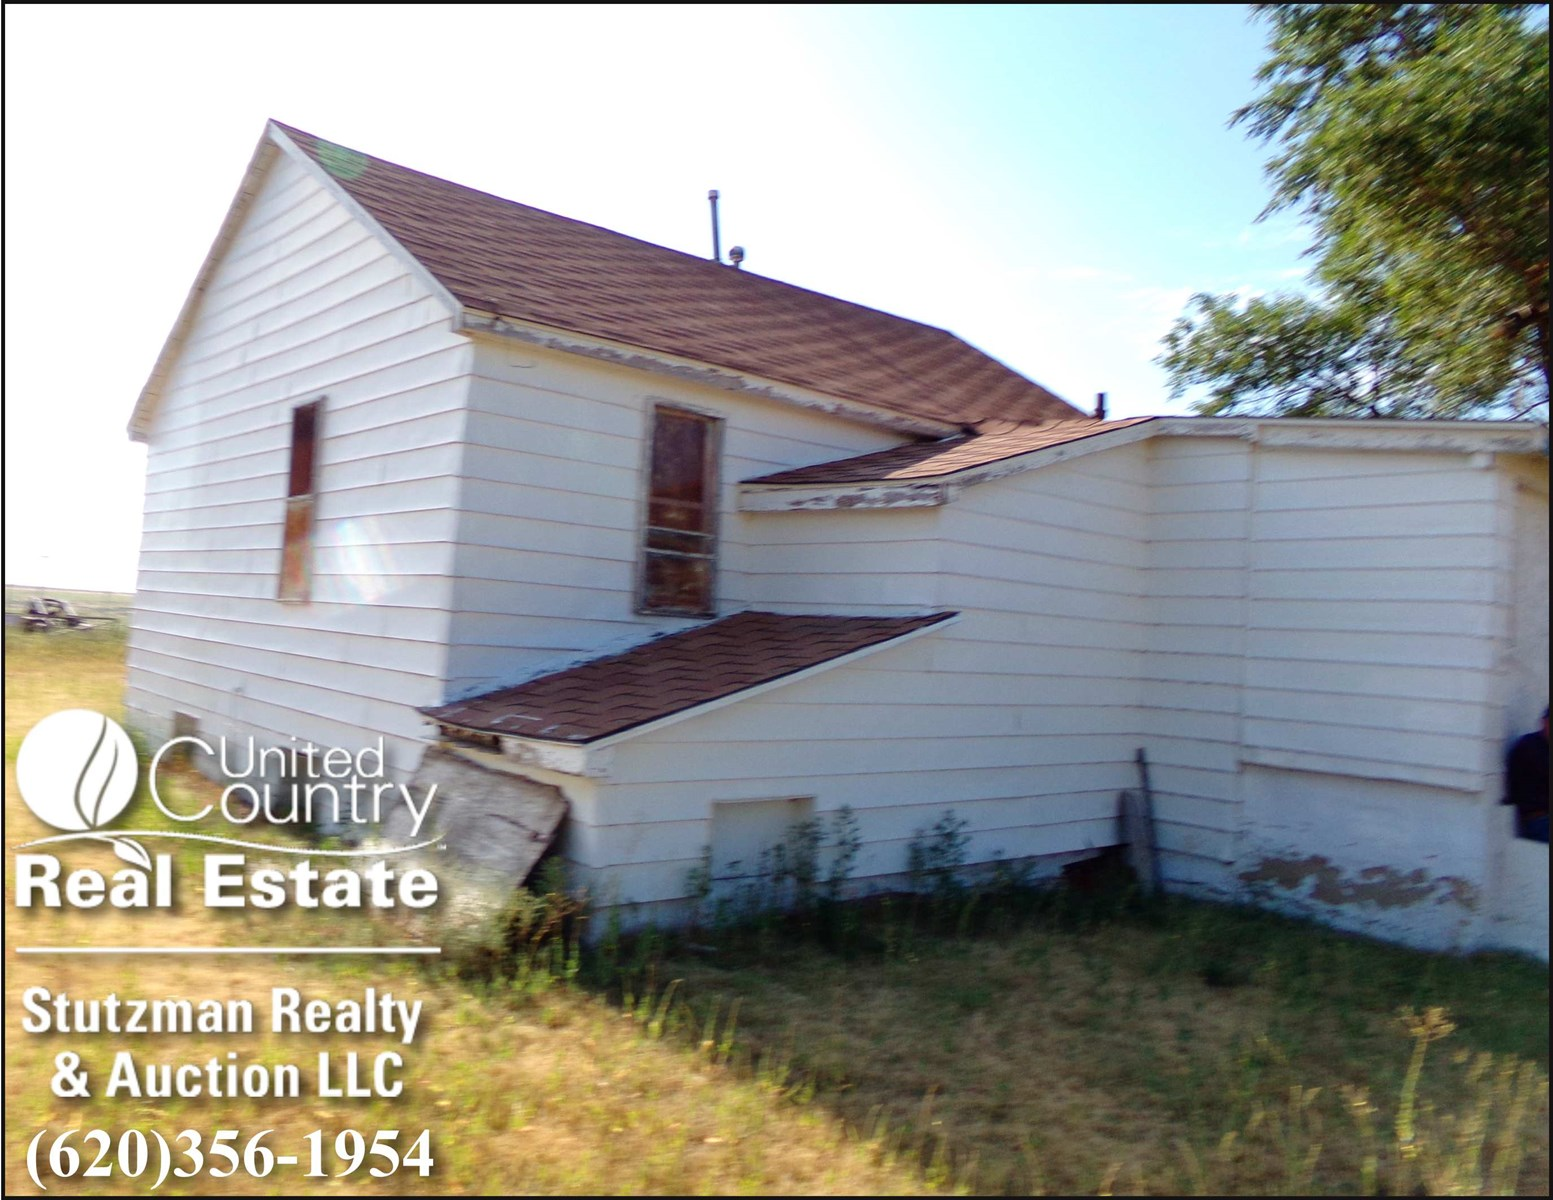 REAL ESTATE PRIVATE AUCTION ~ 1200 N HWY 27, SYRACUSE, KS